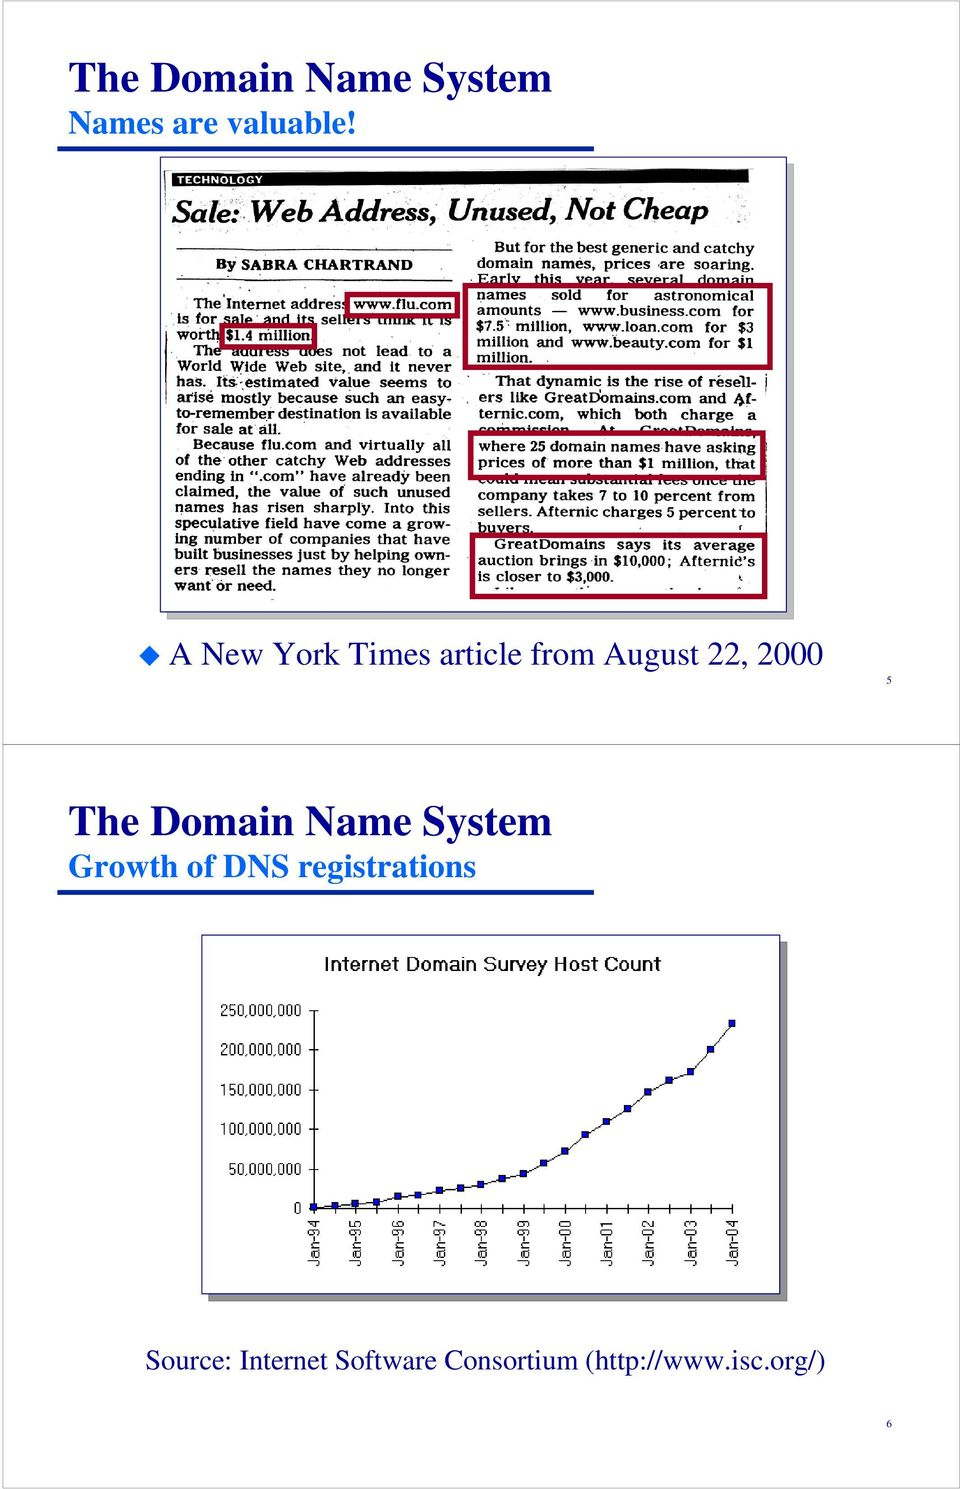 The Domain Name System Growth of DNS registrations